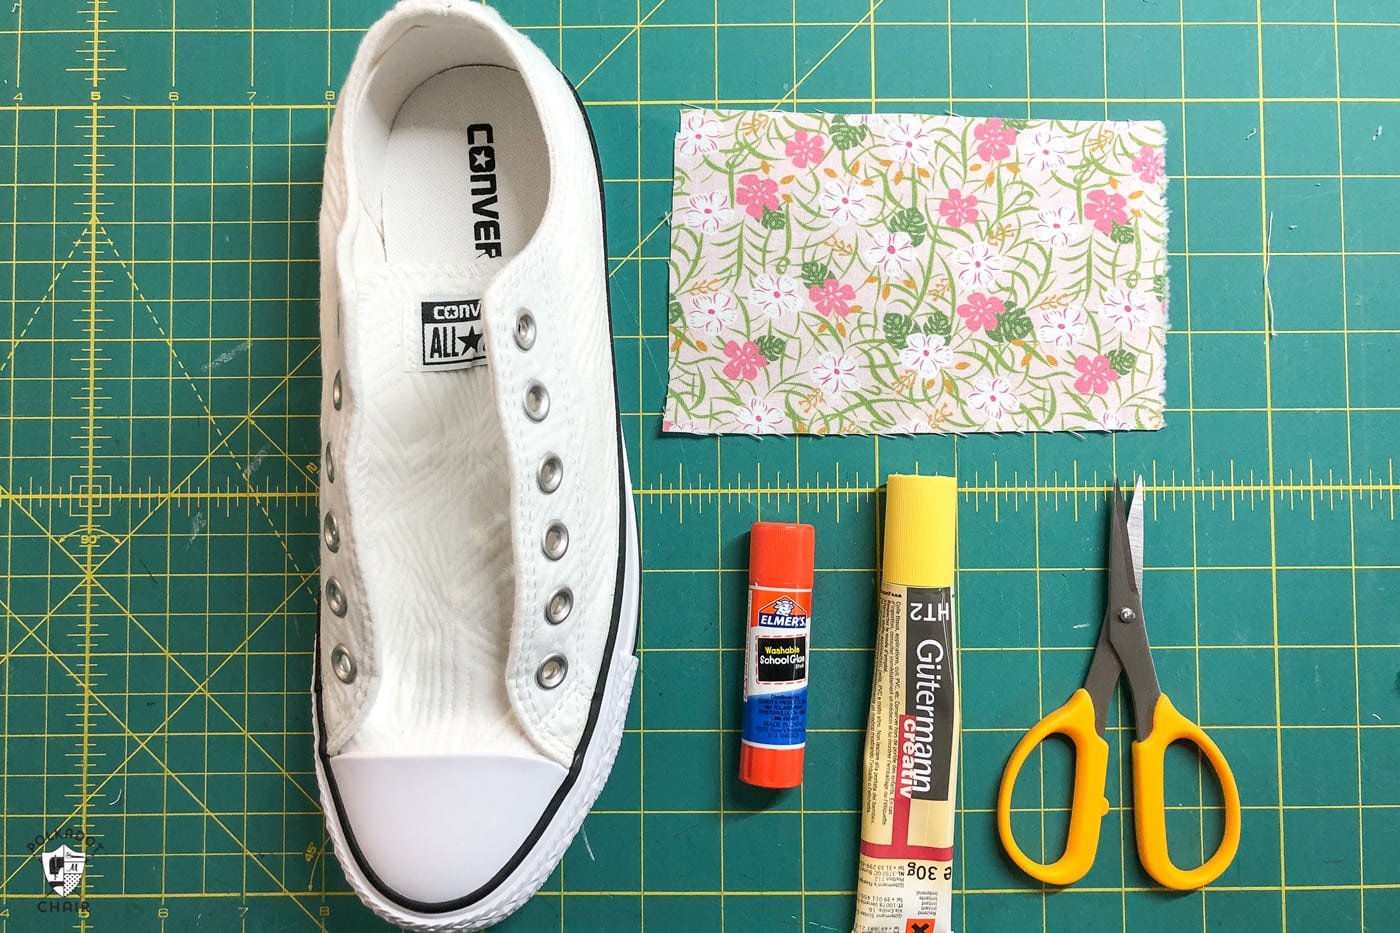 Supplies to add fabric to converse shoes